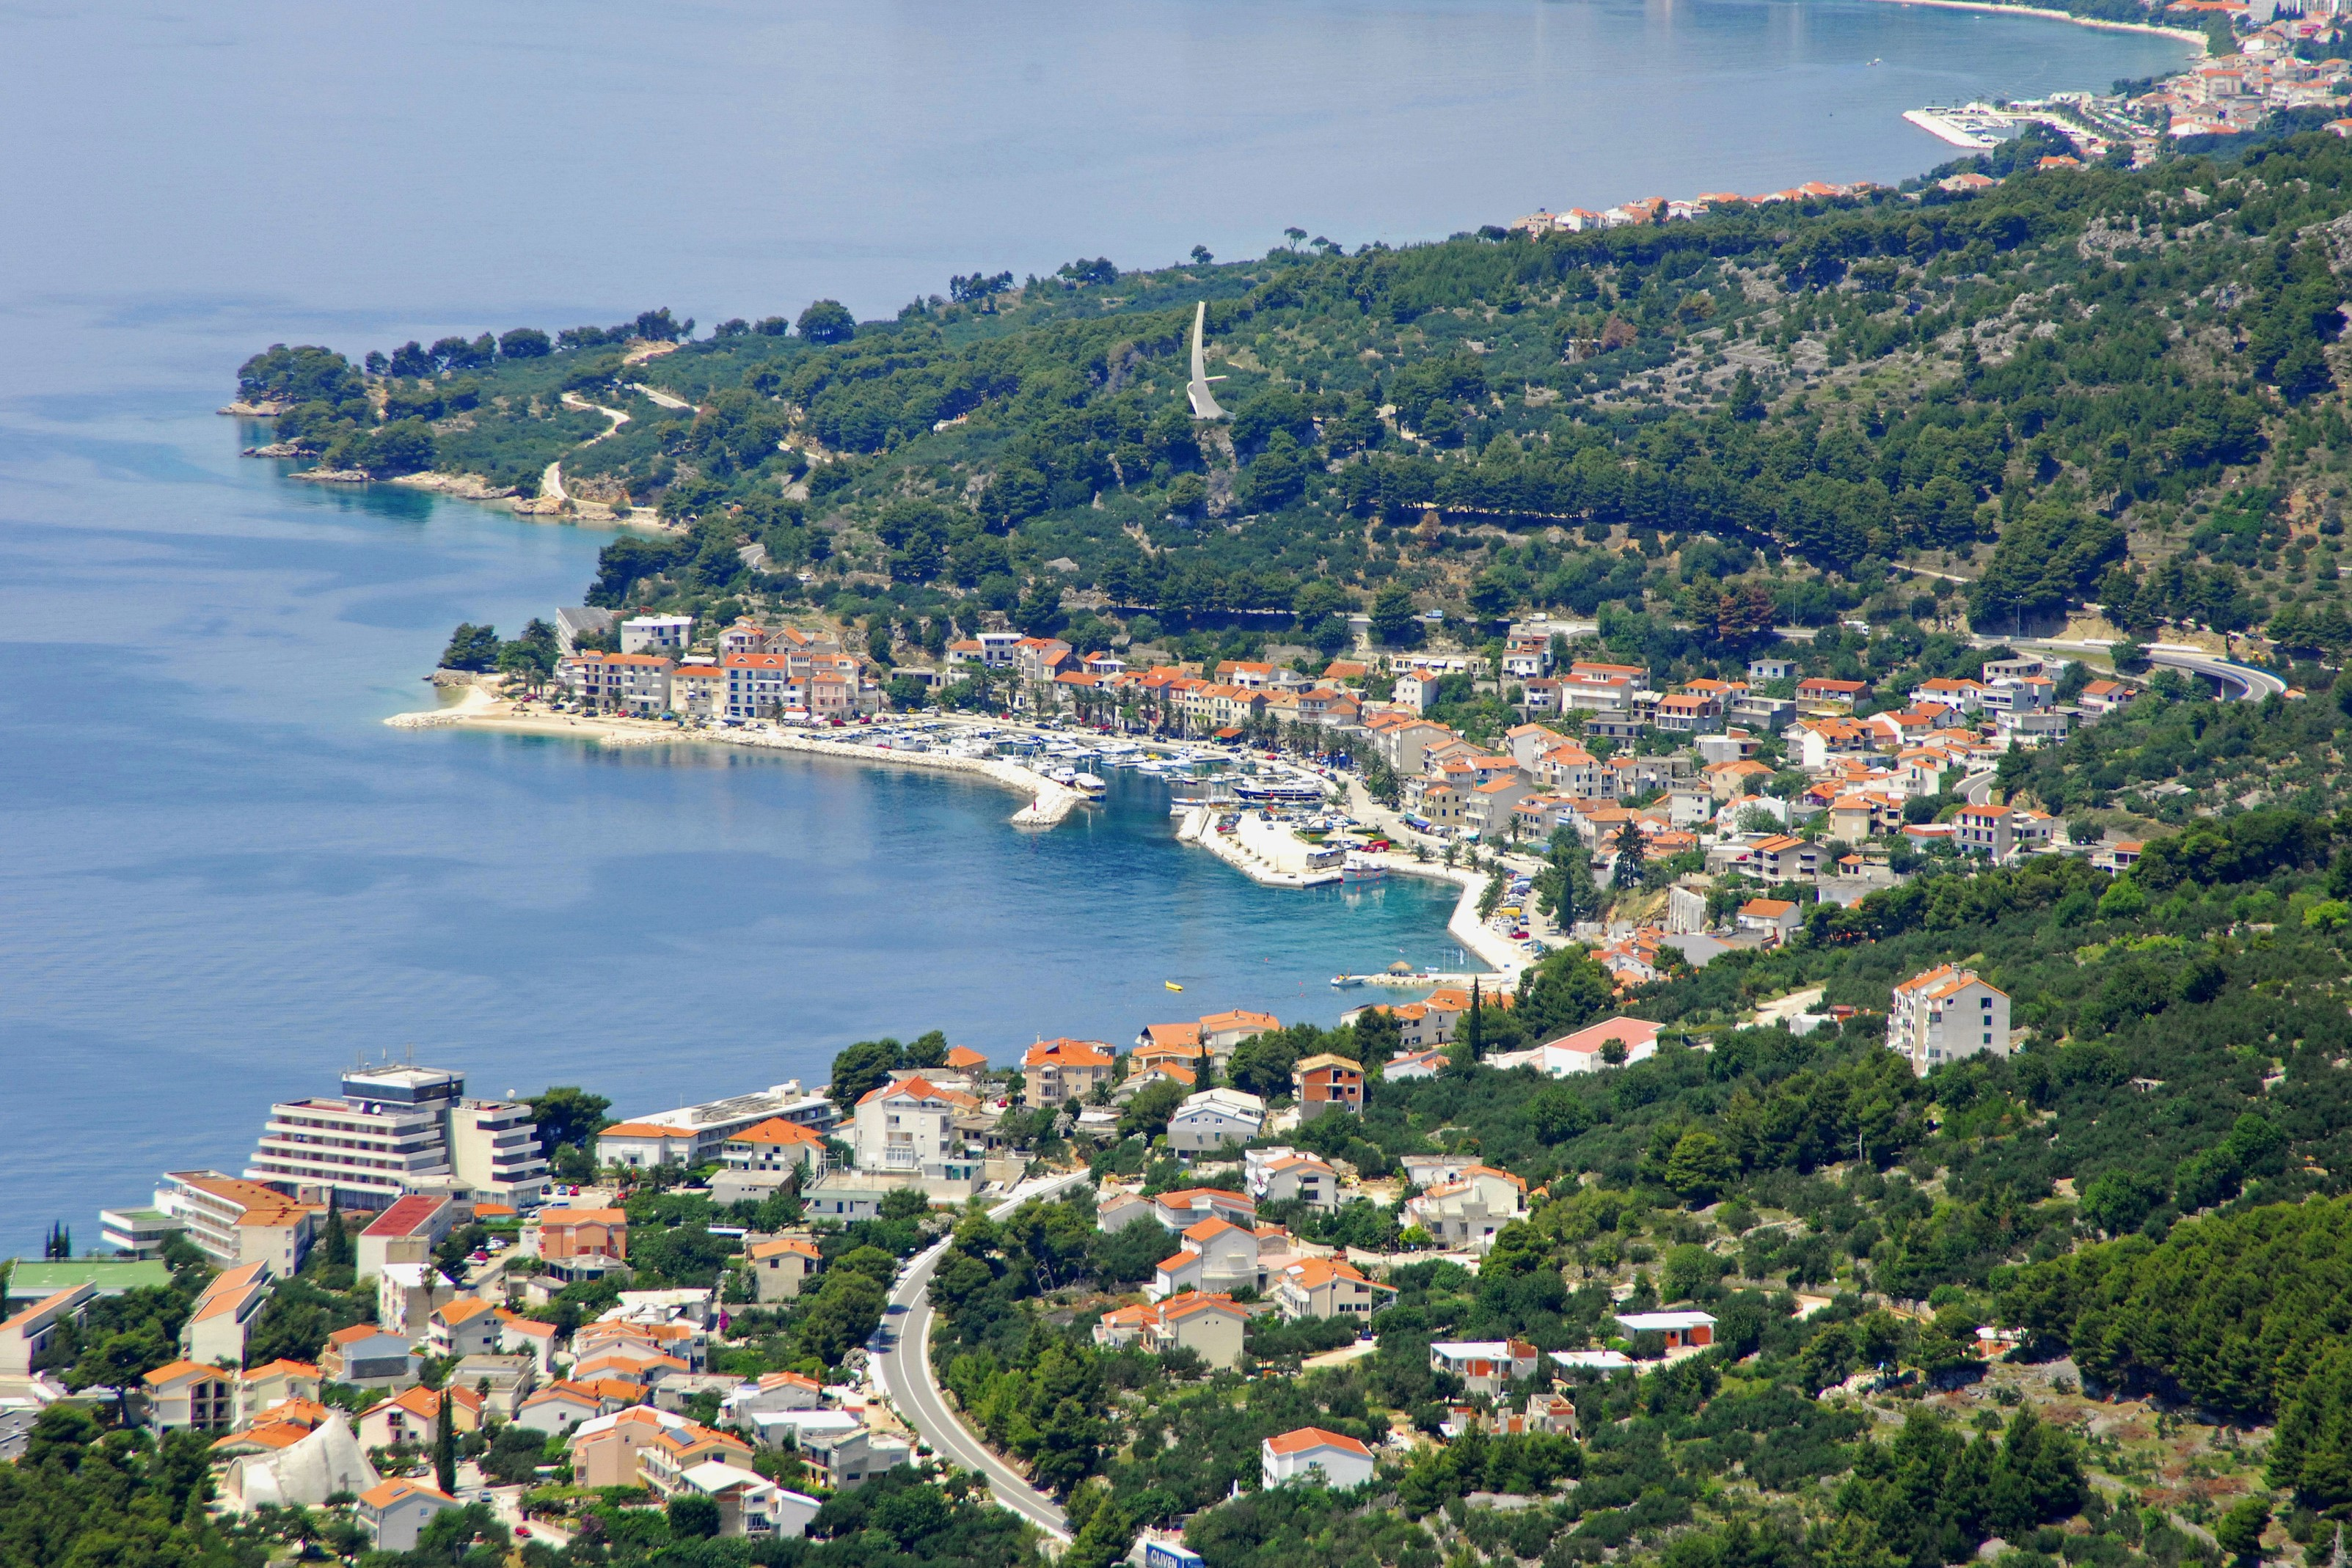 Podgora, Croatia - Monterrasol small group tours to Podgora, Croatia. Travel agency offers small group car tours to see Podgora in Croatia. Order small group tour to Podgora with departure date on request.